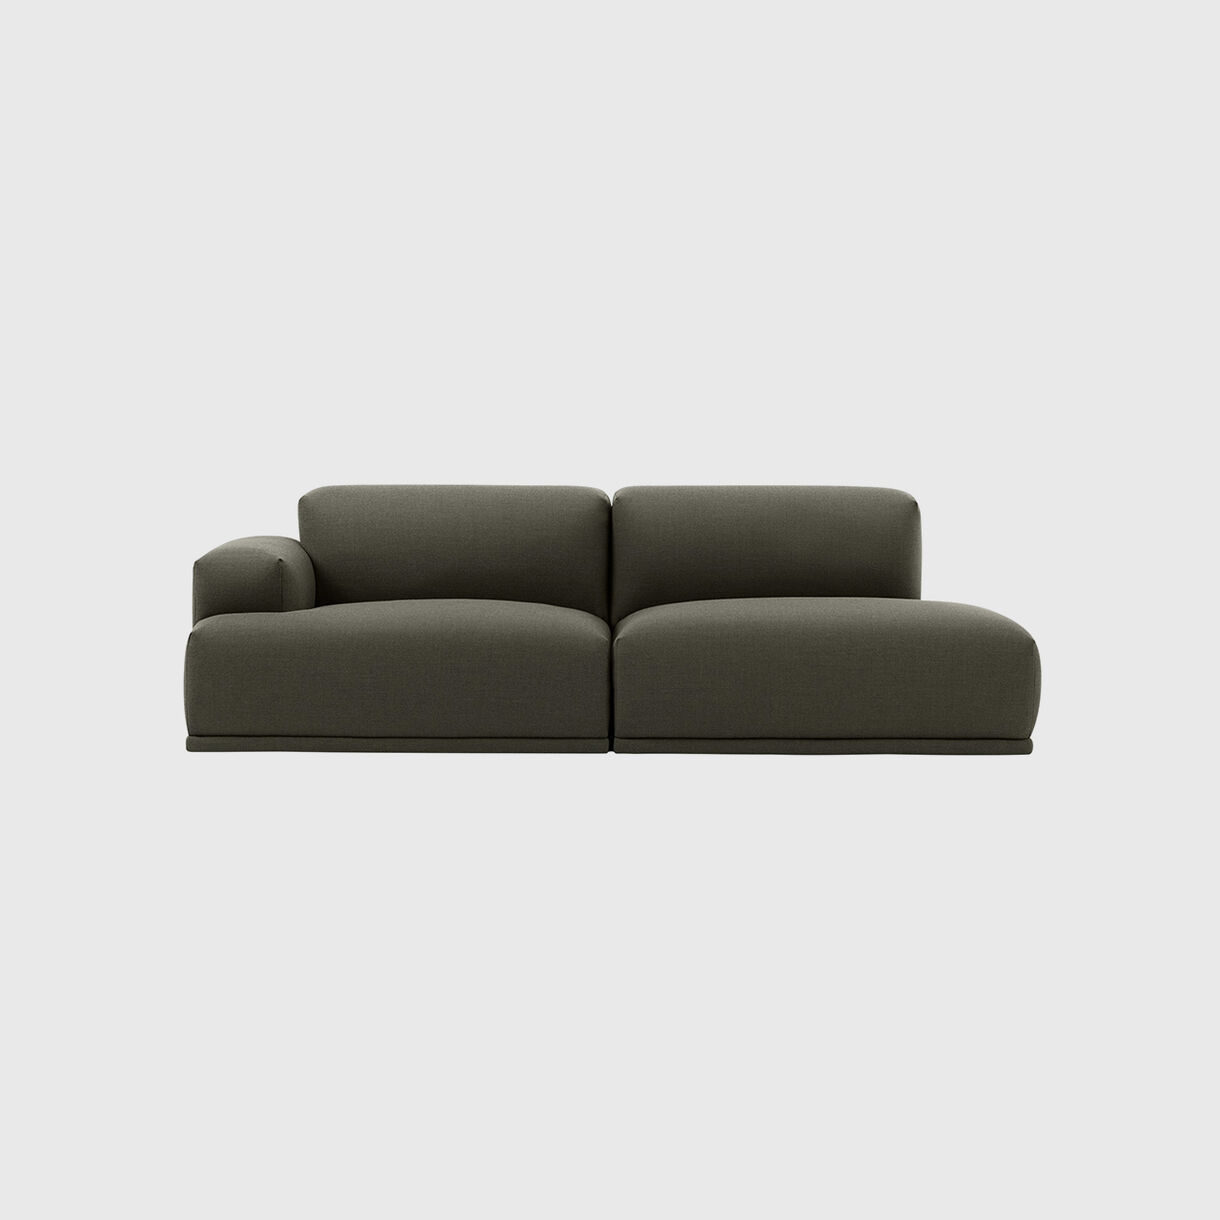 Connect Sofa, 2 Seater, Fiord 961